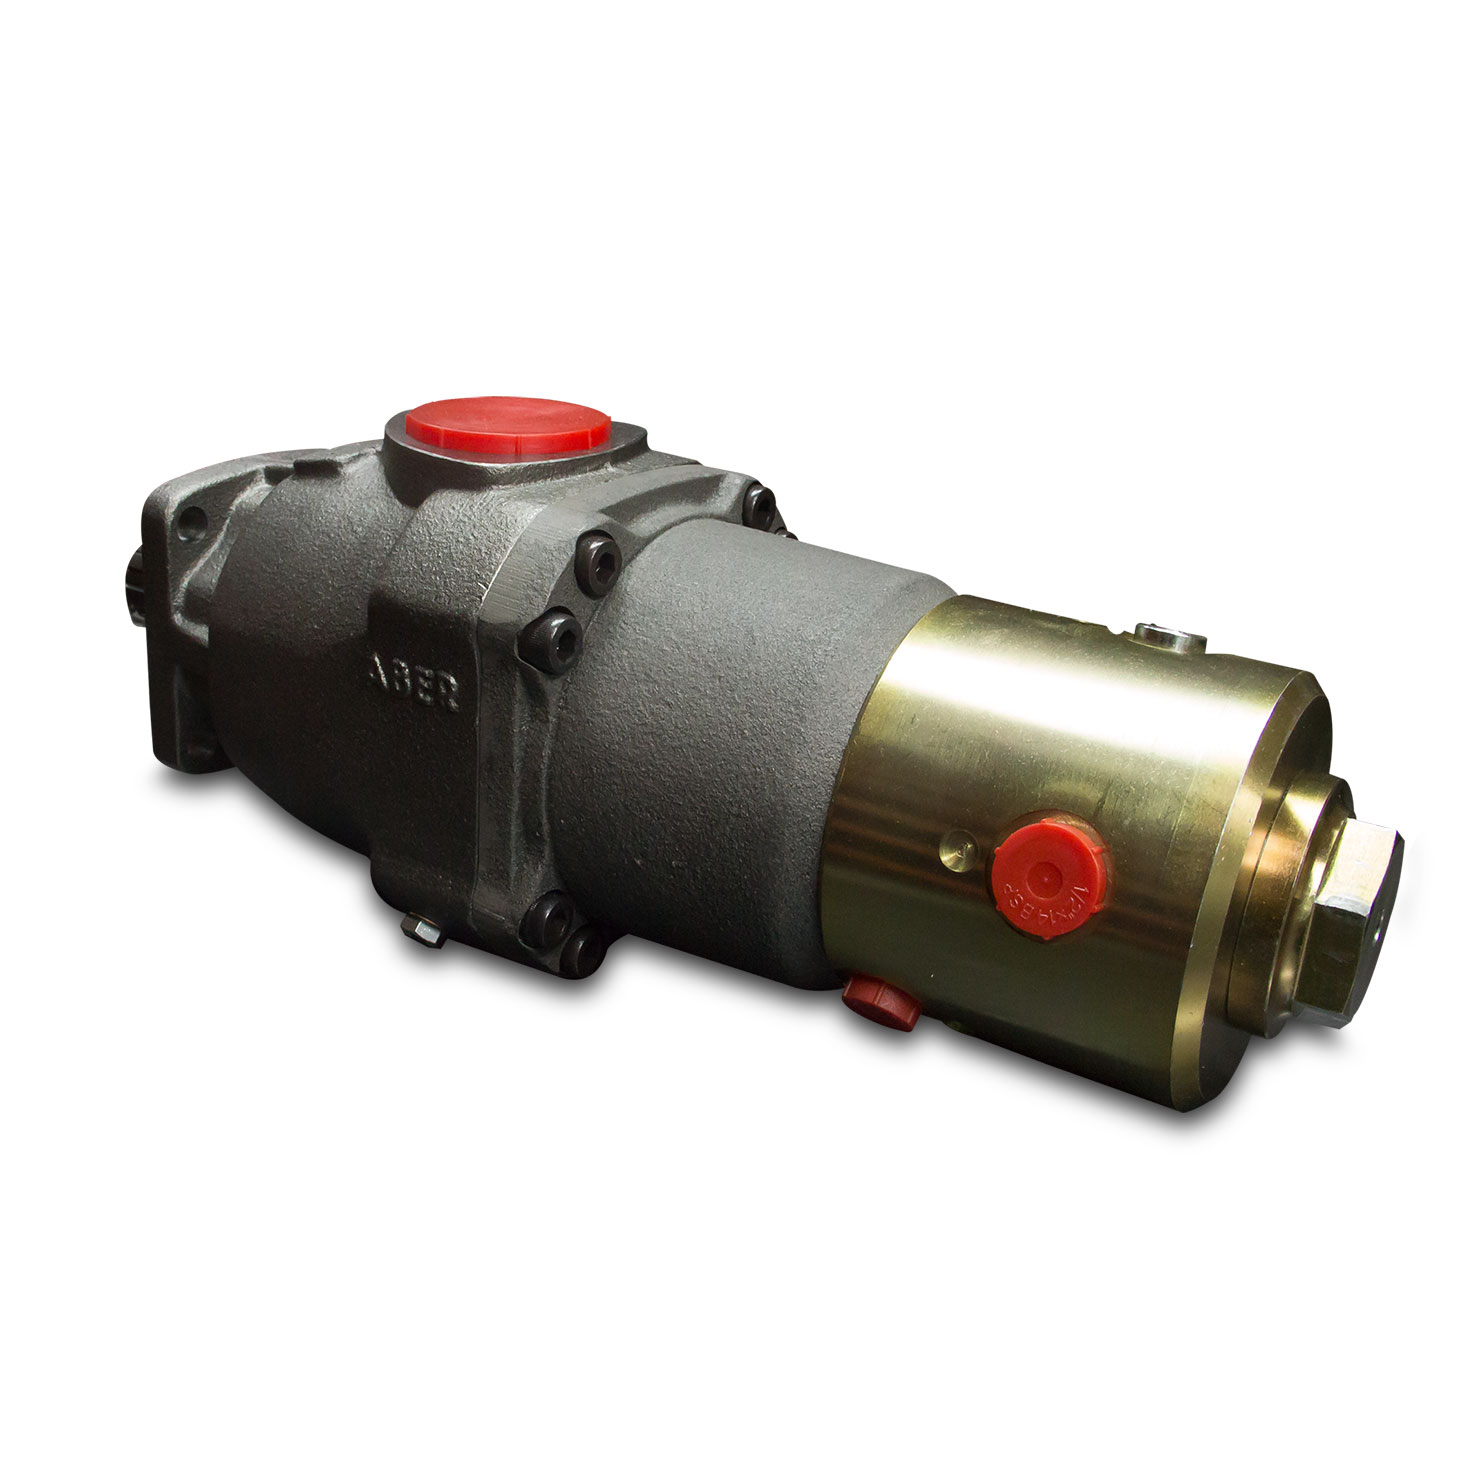 Customized Piston Pump - Special Products - ABER